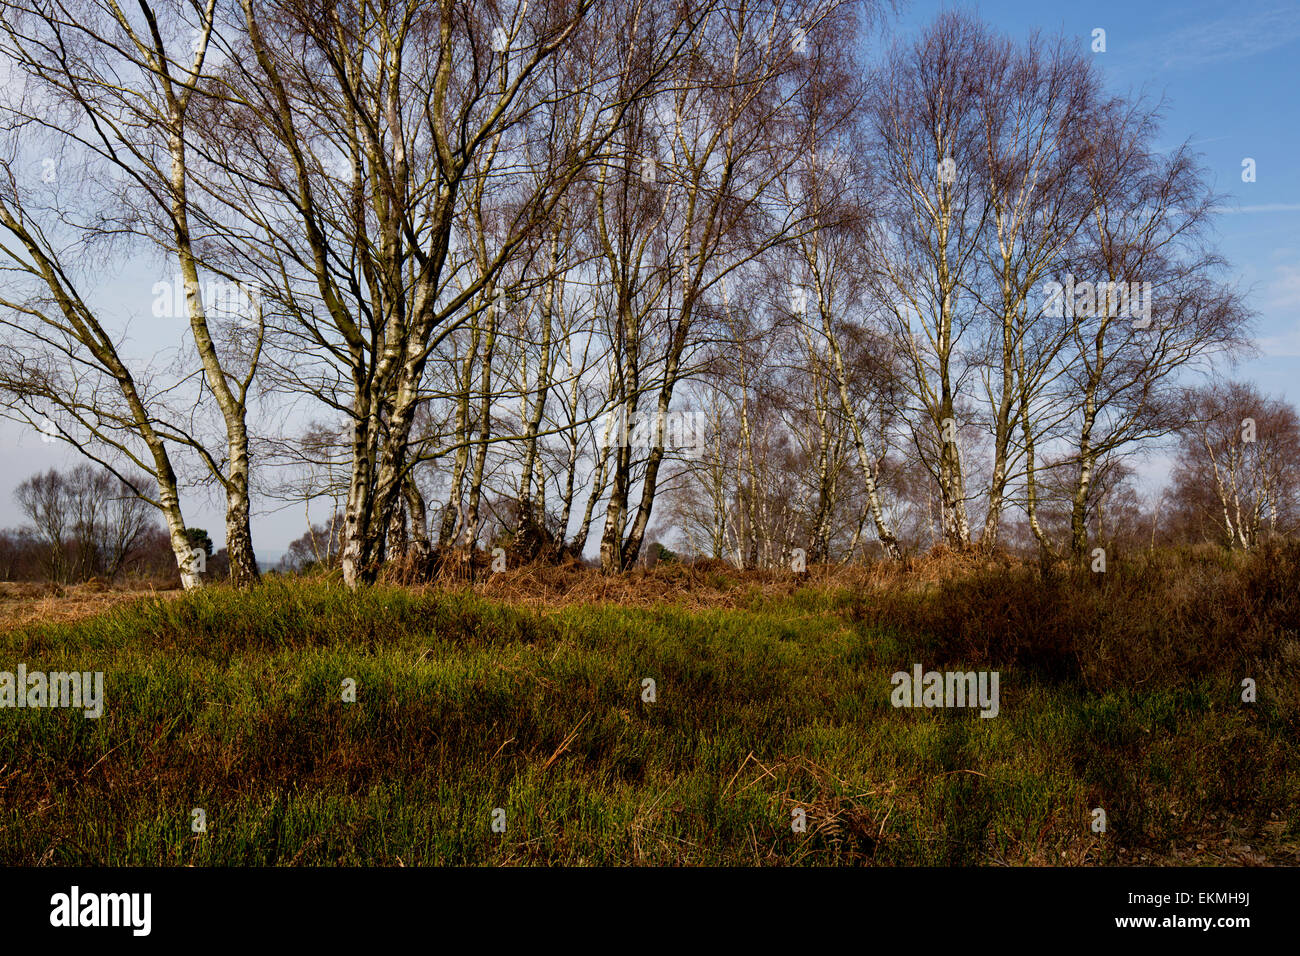 Silver Birch trees and heathland vegetation - Stock Image